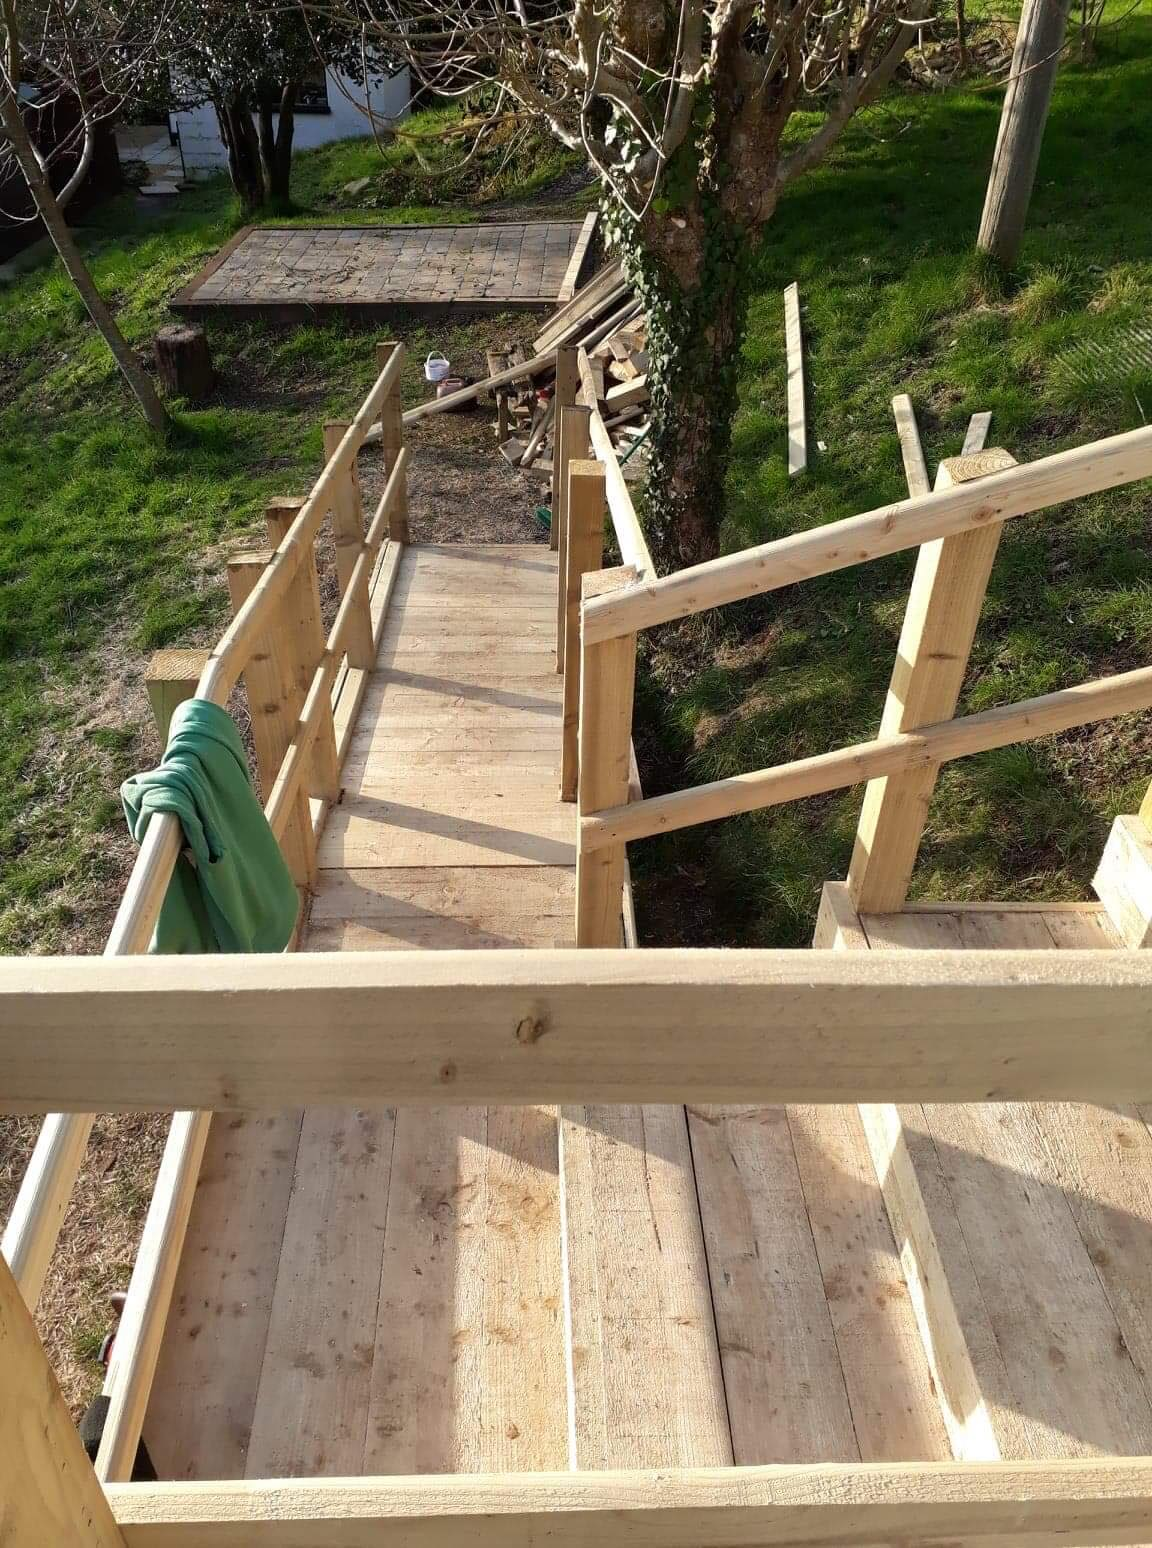 Decking - Pathway, fencing and stairs leading to deck